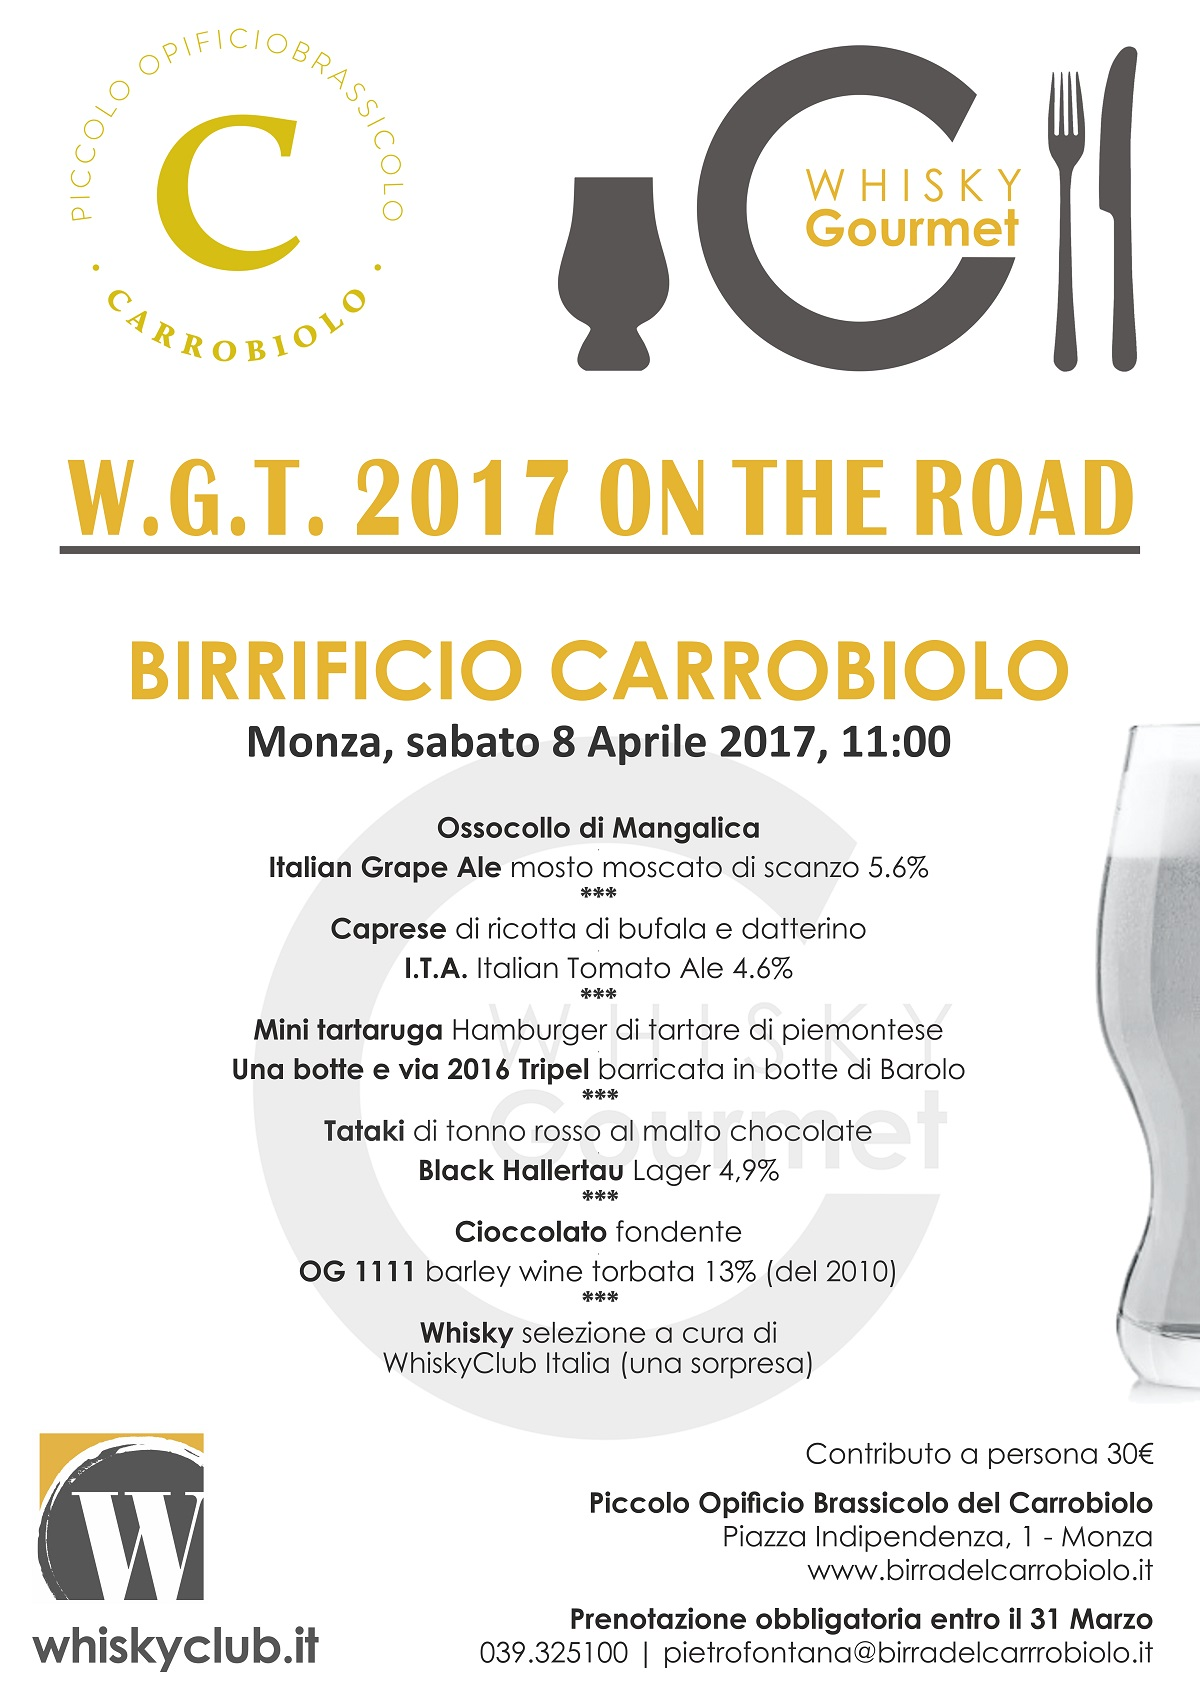 W.G.T.2017 ON THE ROAD - BIRRIFICIO CARROBIOLO